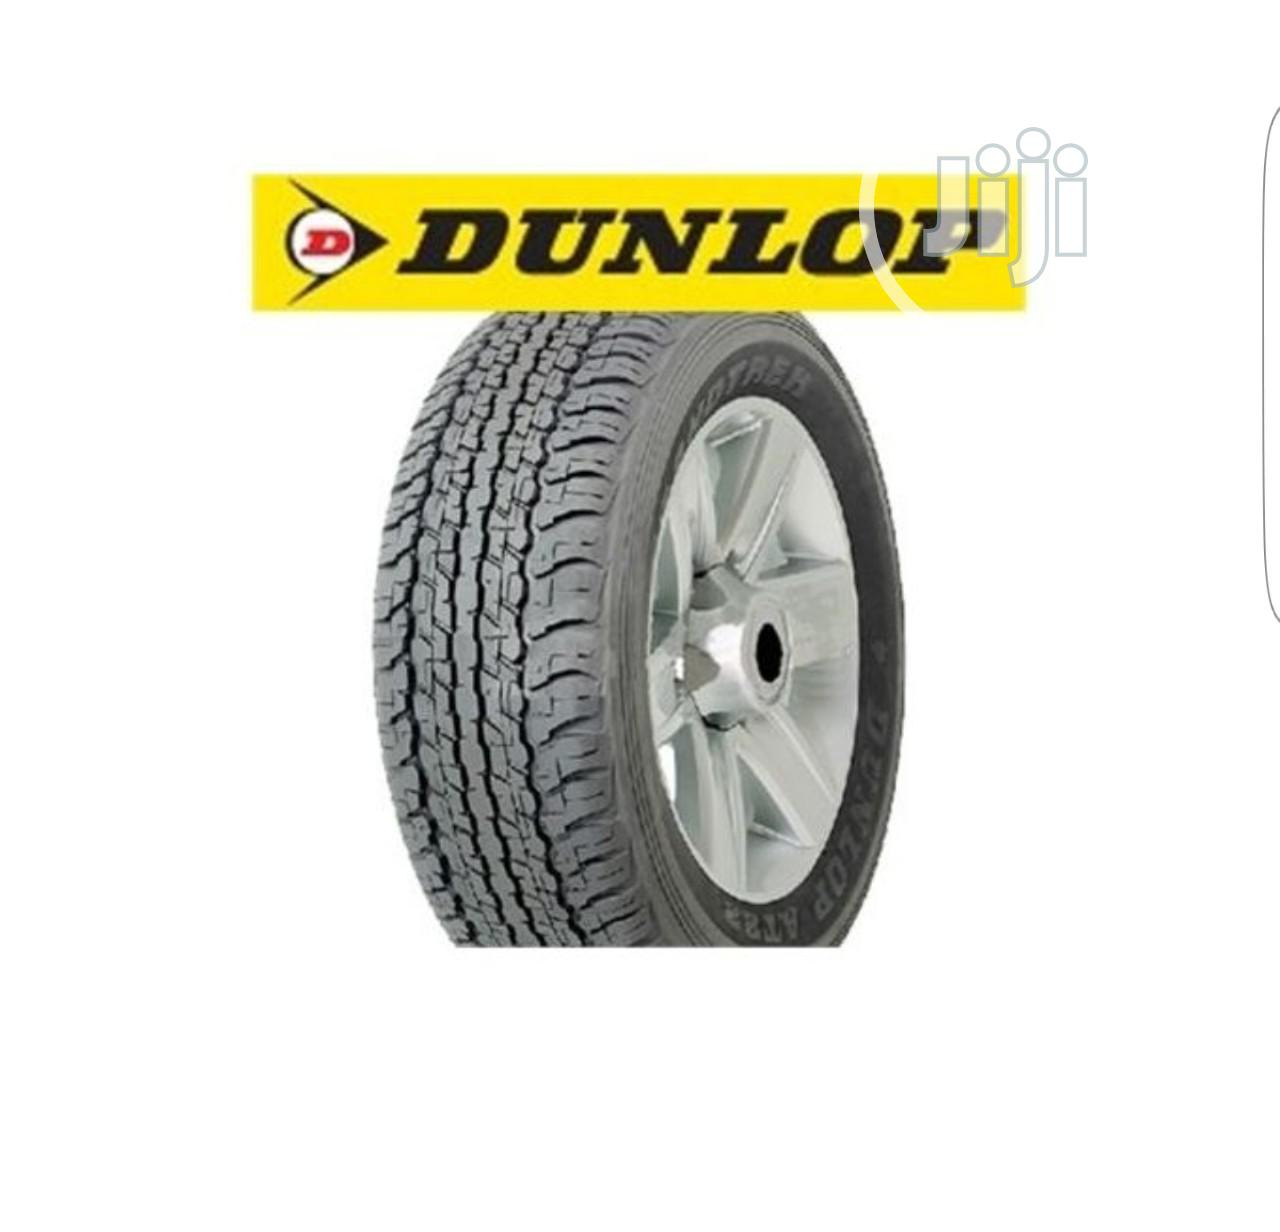 Size 265/70R17 Brand New Dunlop Tyre